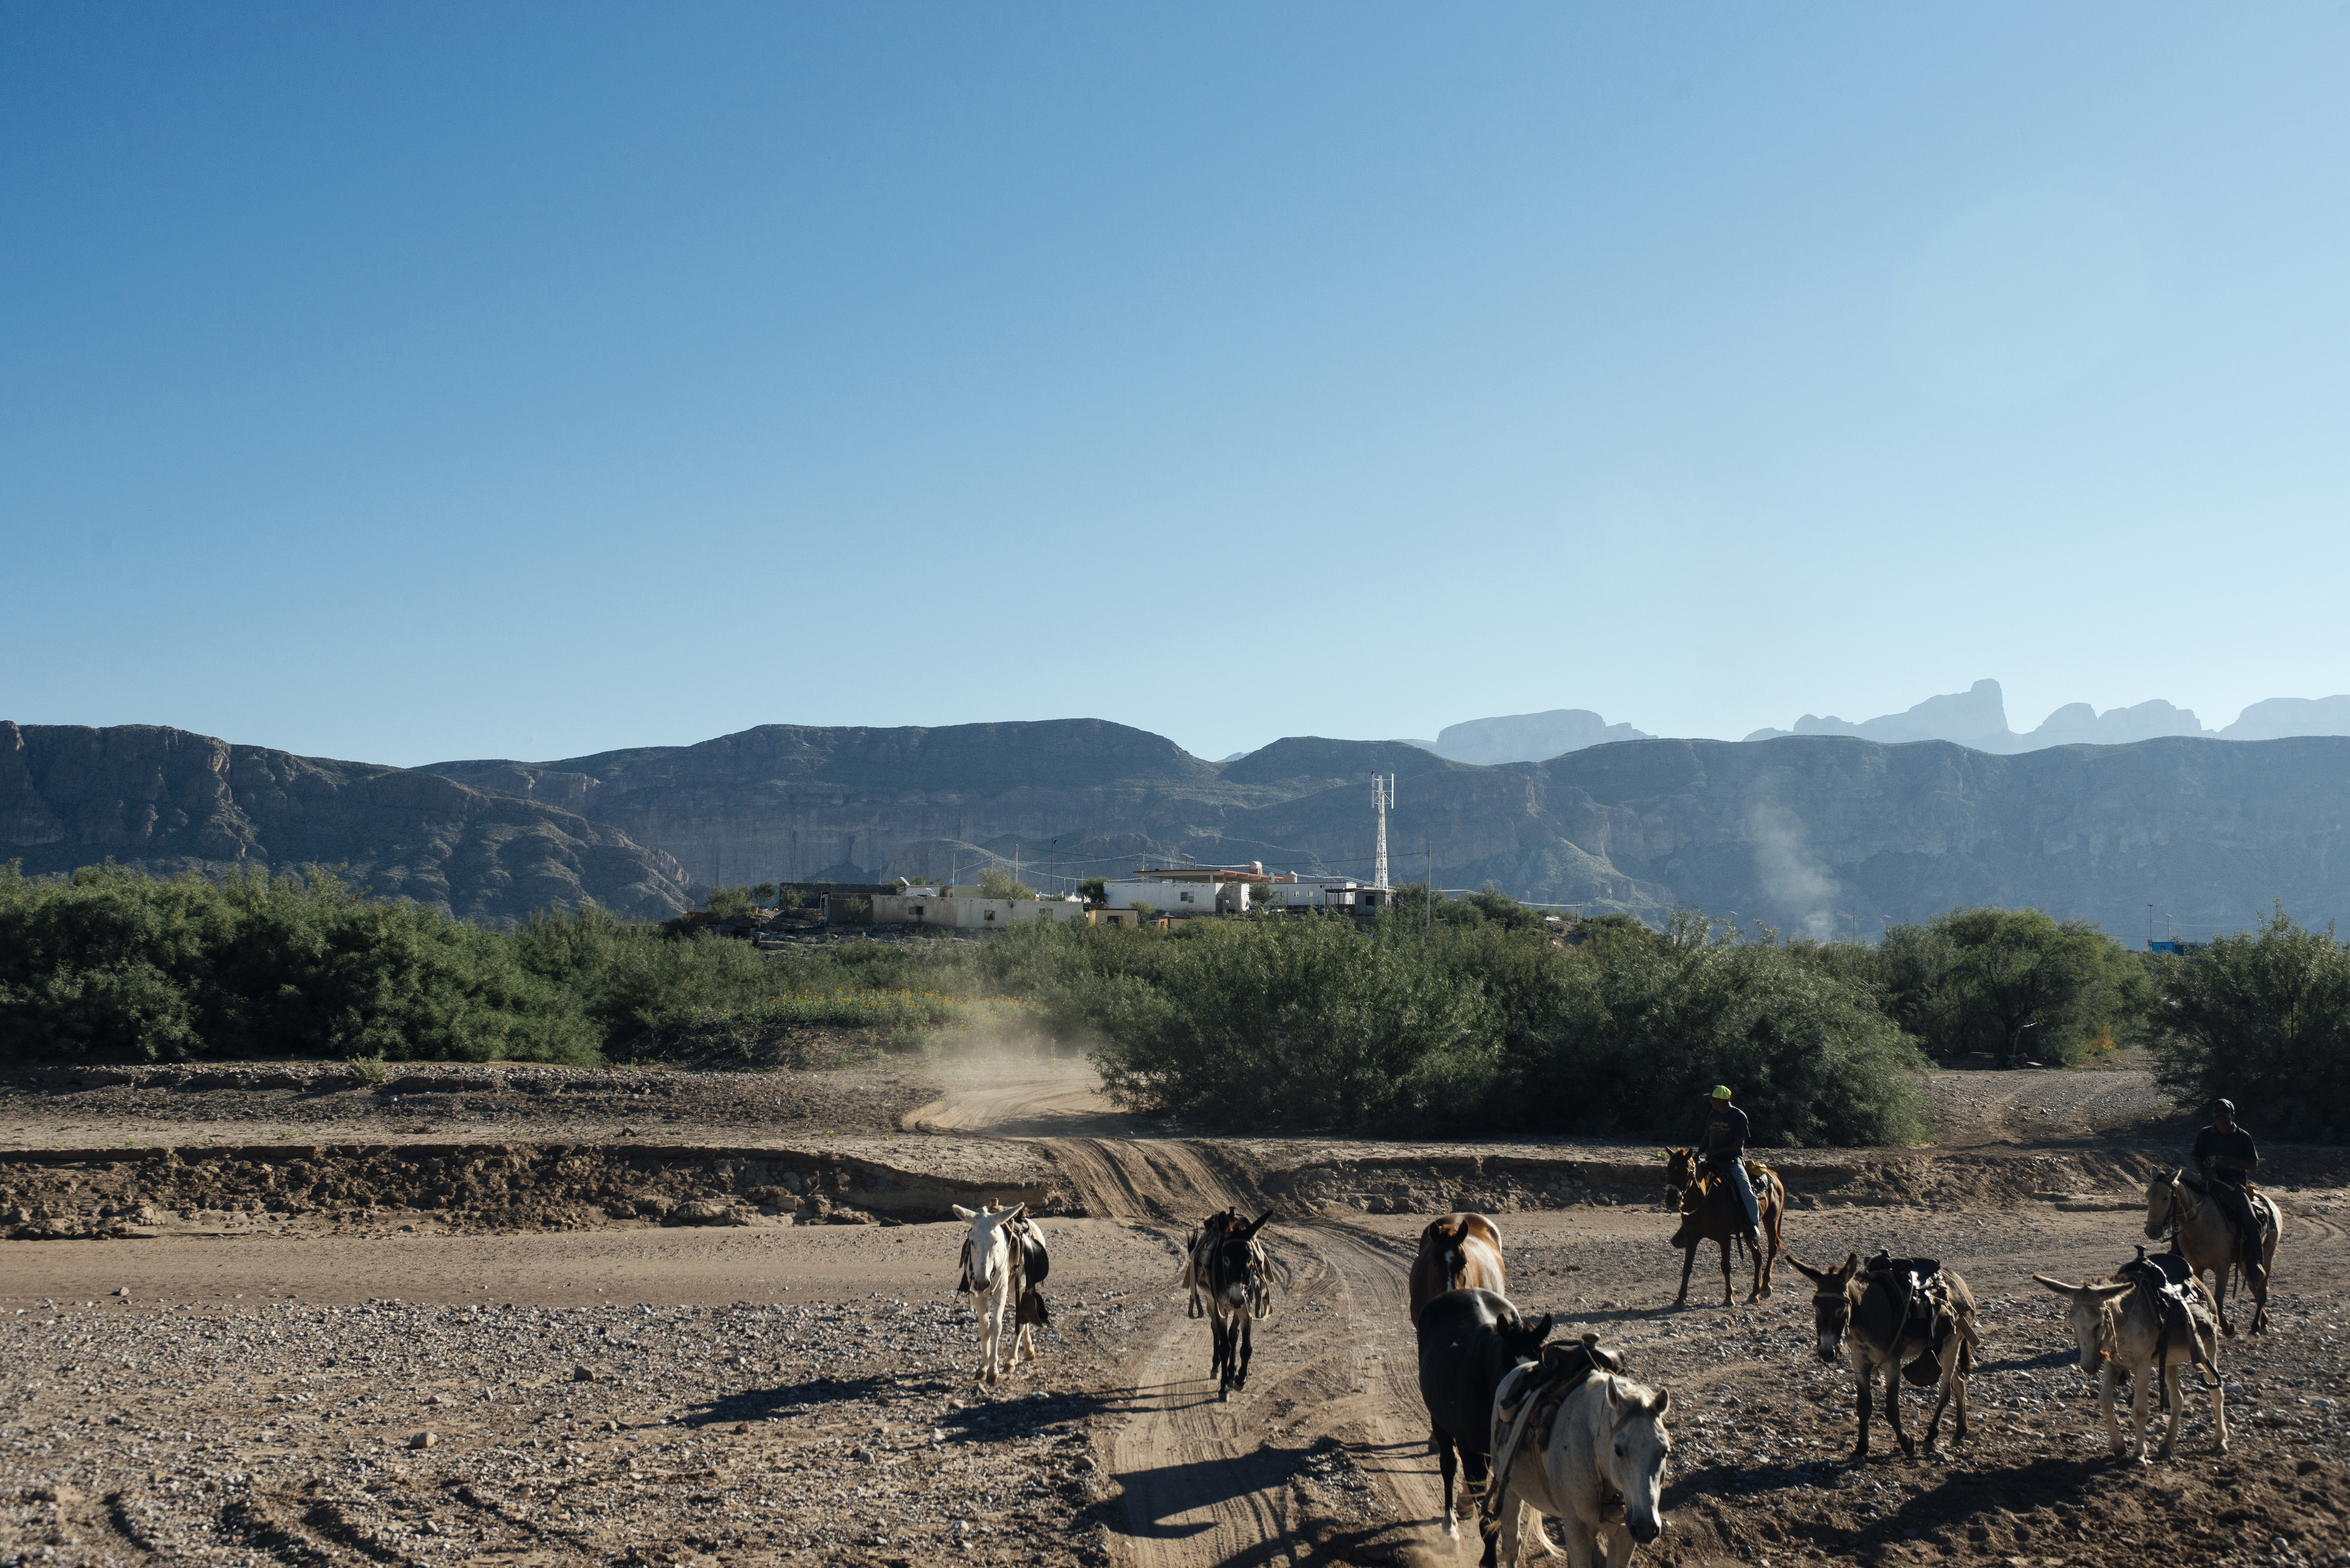 Mules and horses transport locals around Boquillas and are rented to a steady stream of tourists that visit the town.